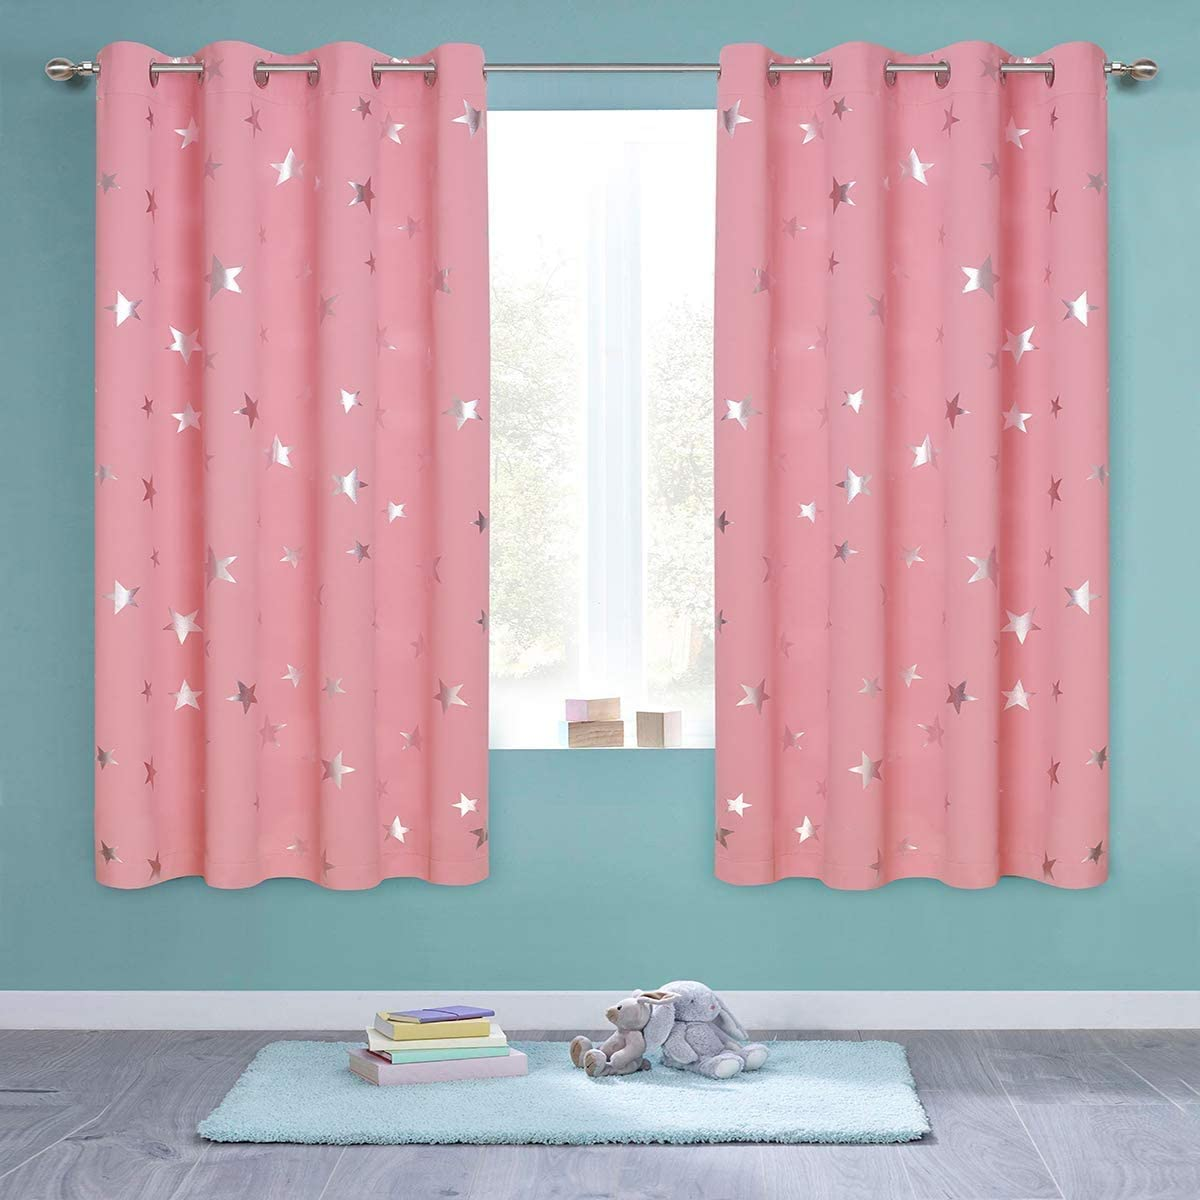 Anjee Pink Blackout Curtains for Girls Bedroom 54 Inches Length Stars Window Drapes Silver Foil Printed Room Darkening Panels Grommet Thermal Insulated Drapery Nursery Decor, Baby Pink 38x54 Inches